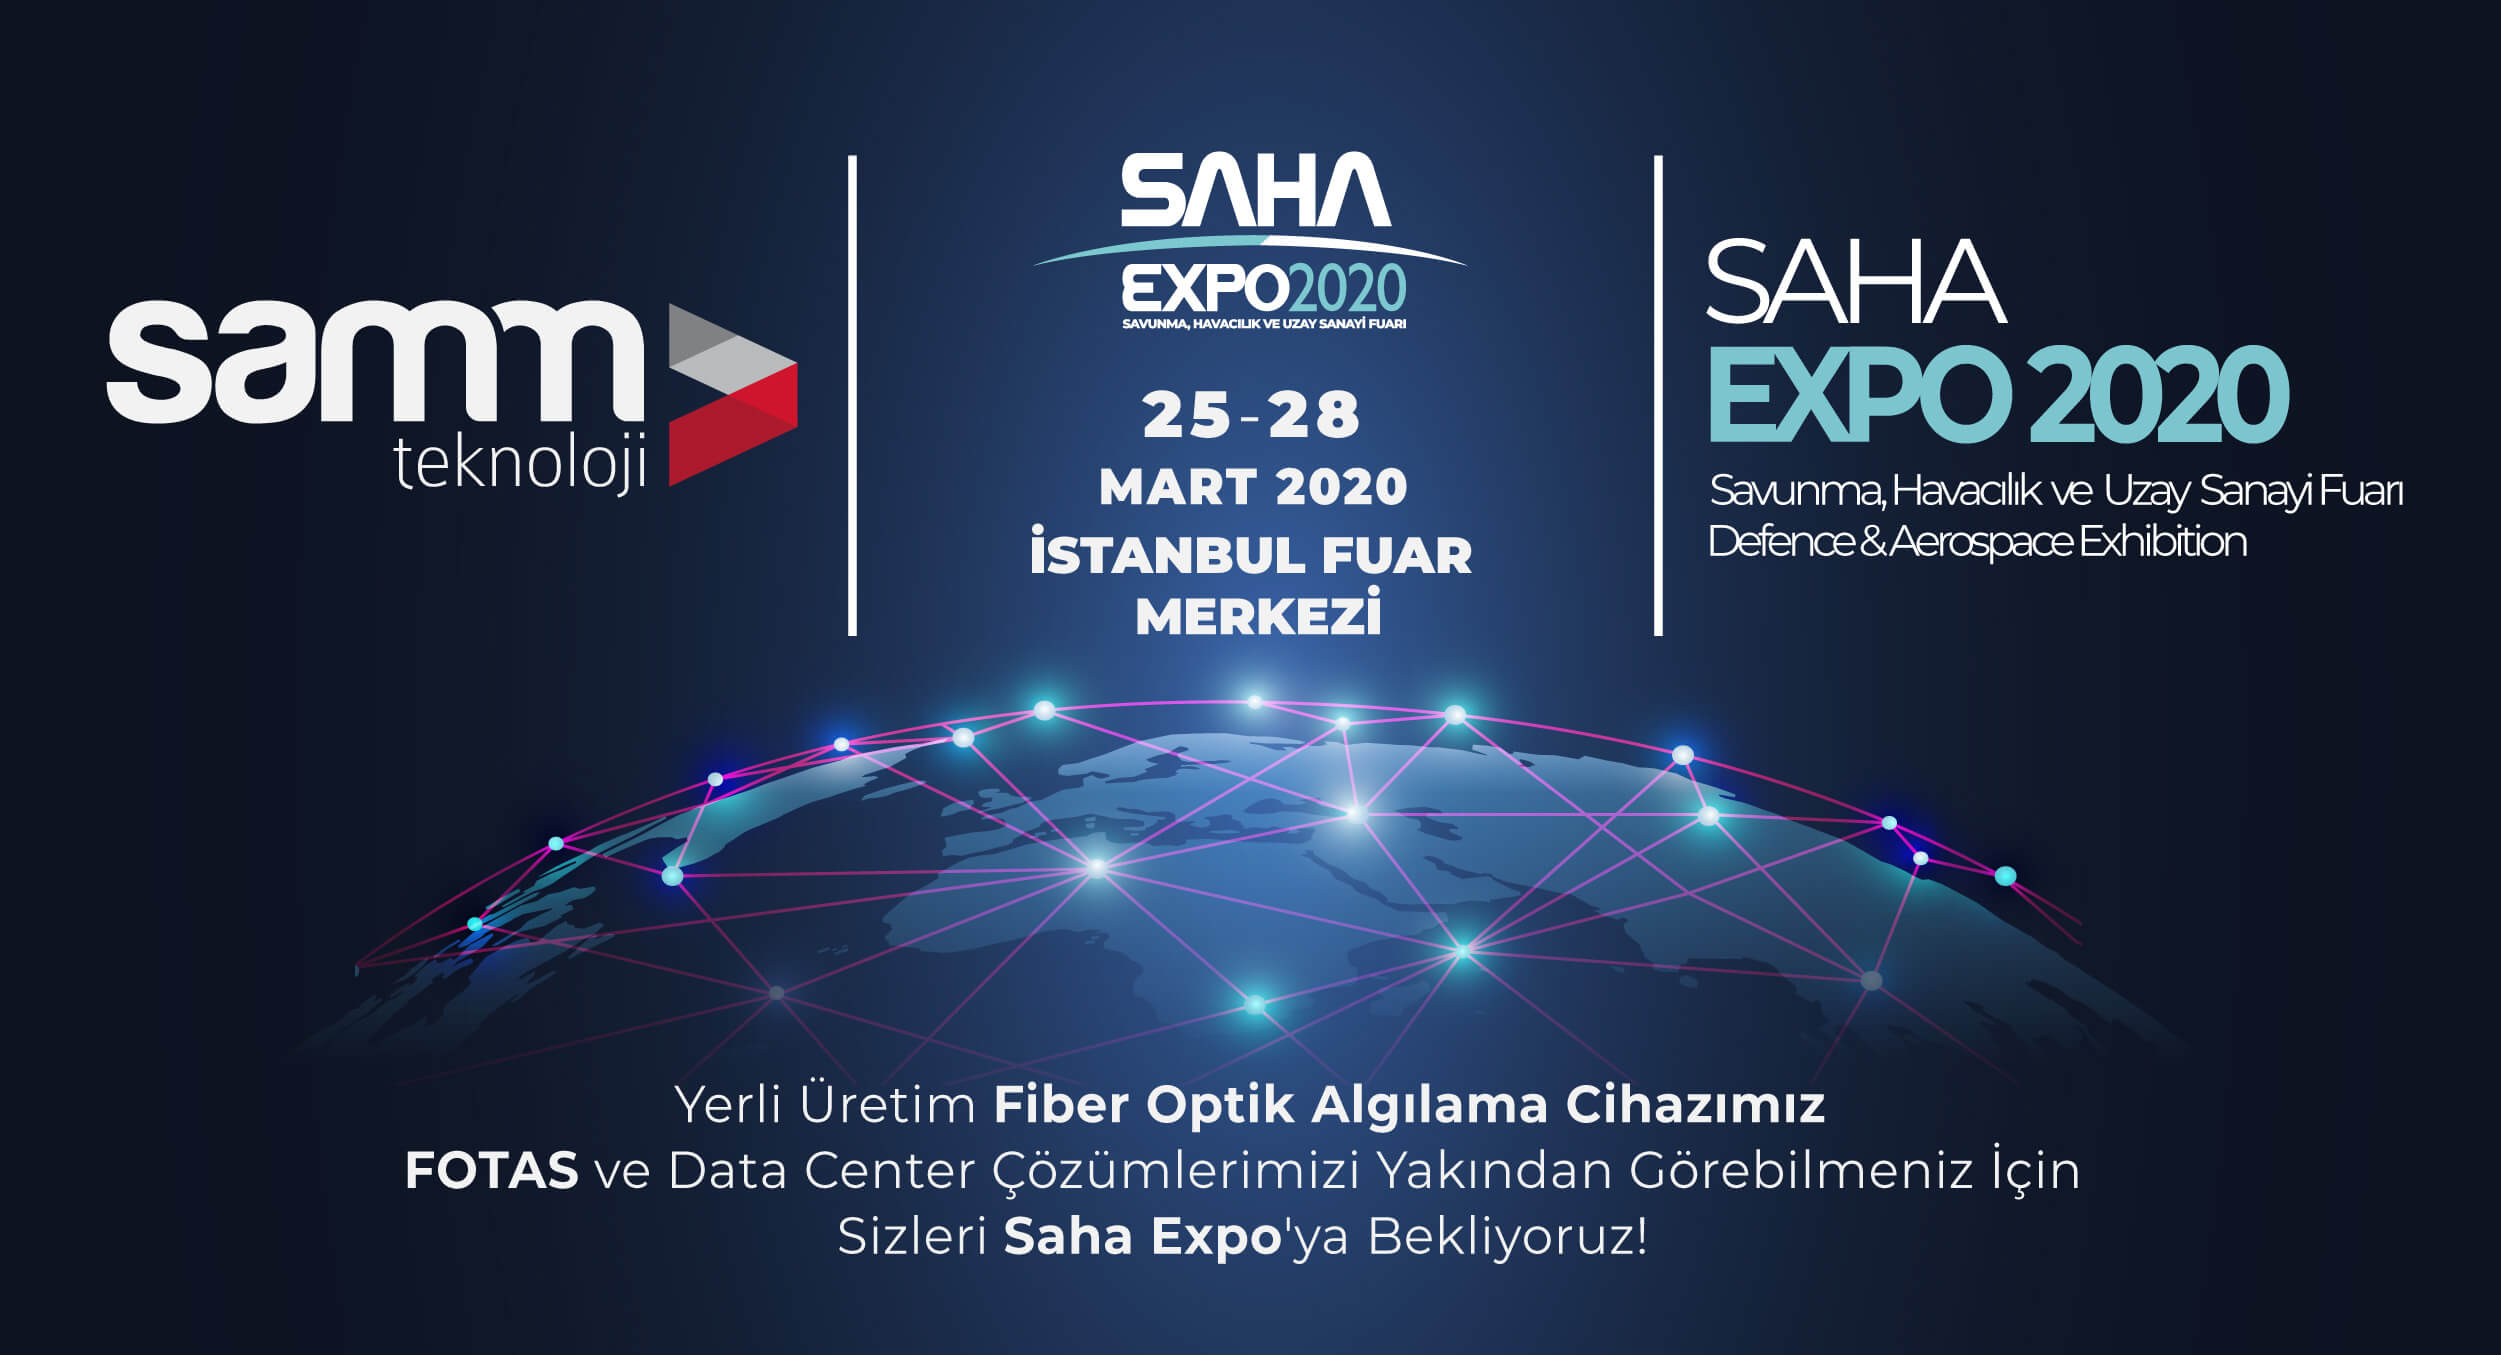 SAHA EXPO 2020 Defense, Aerospace Exhibition | Samm Teknoloji